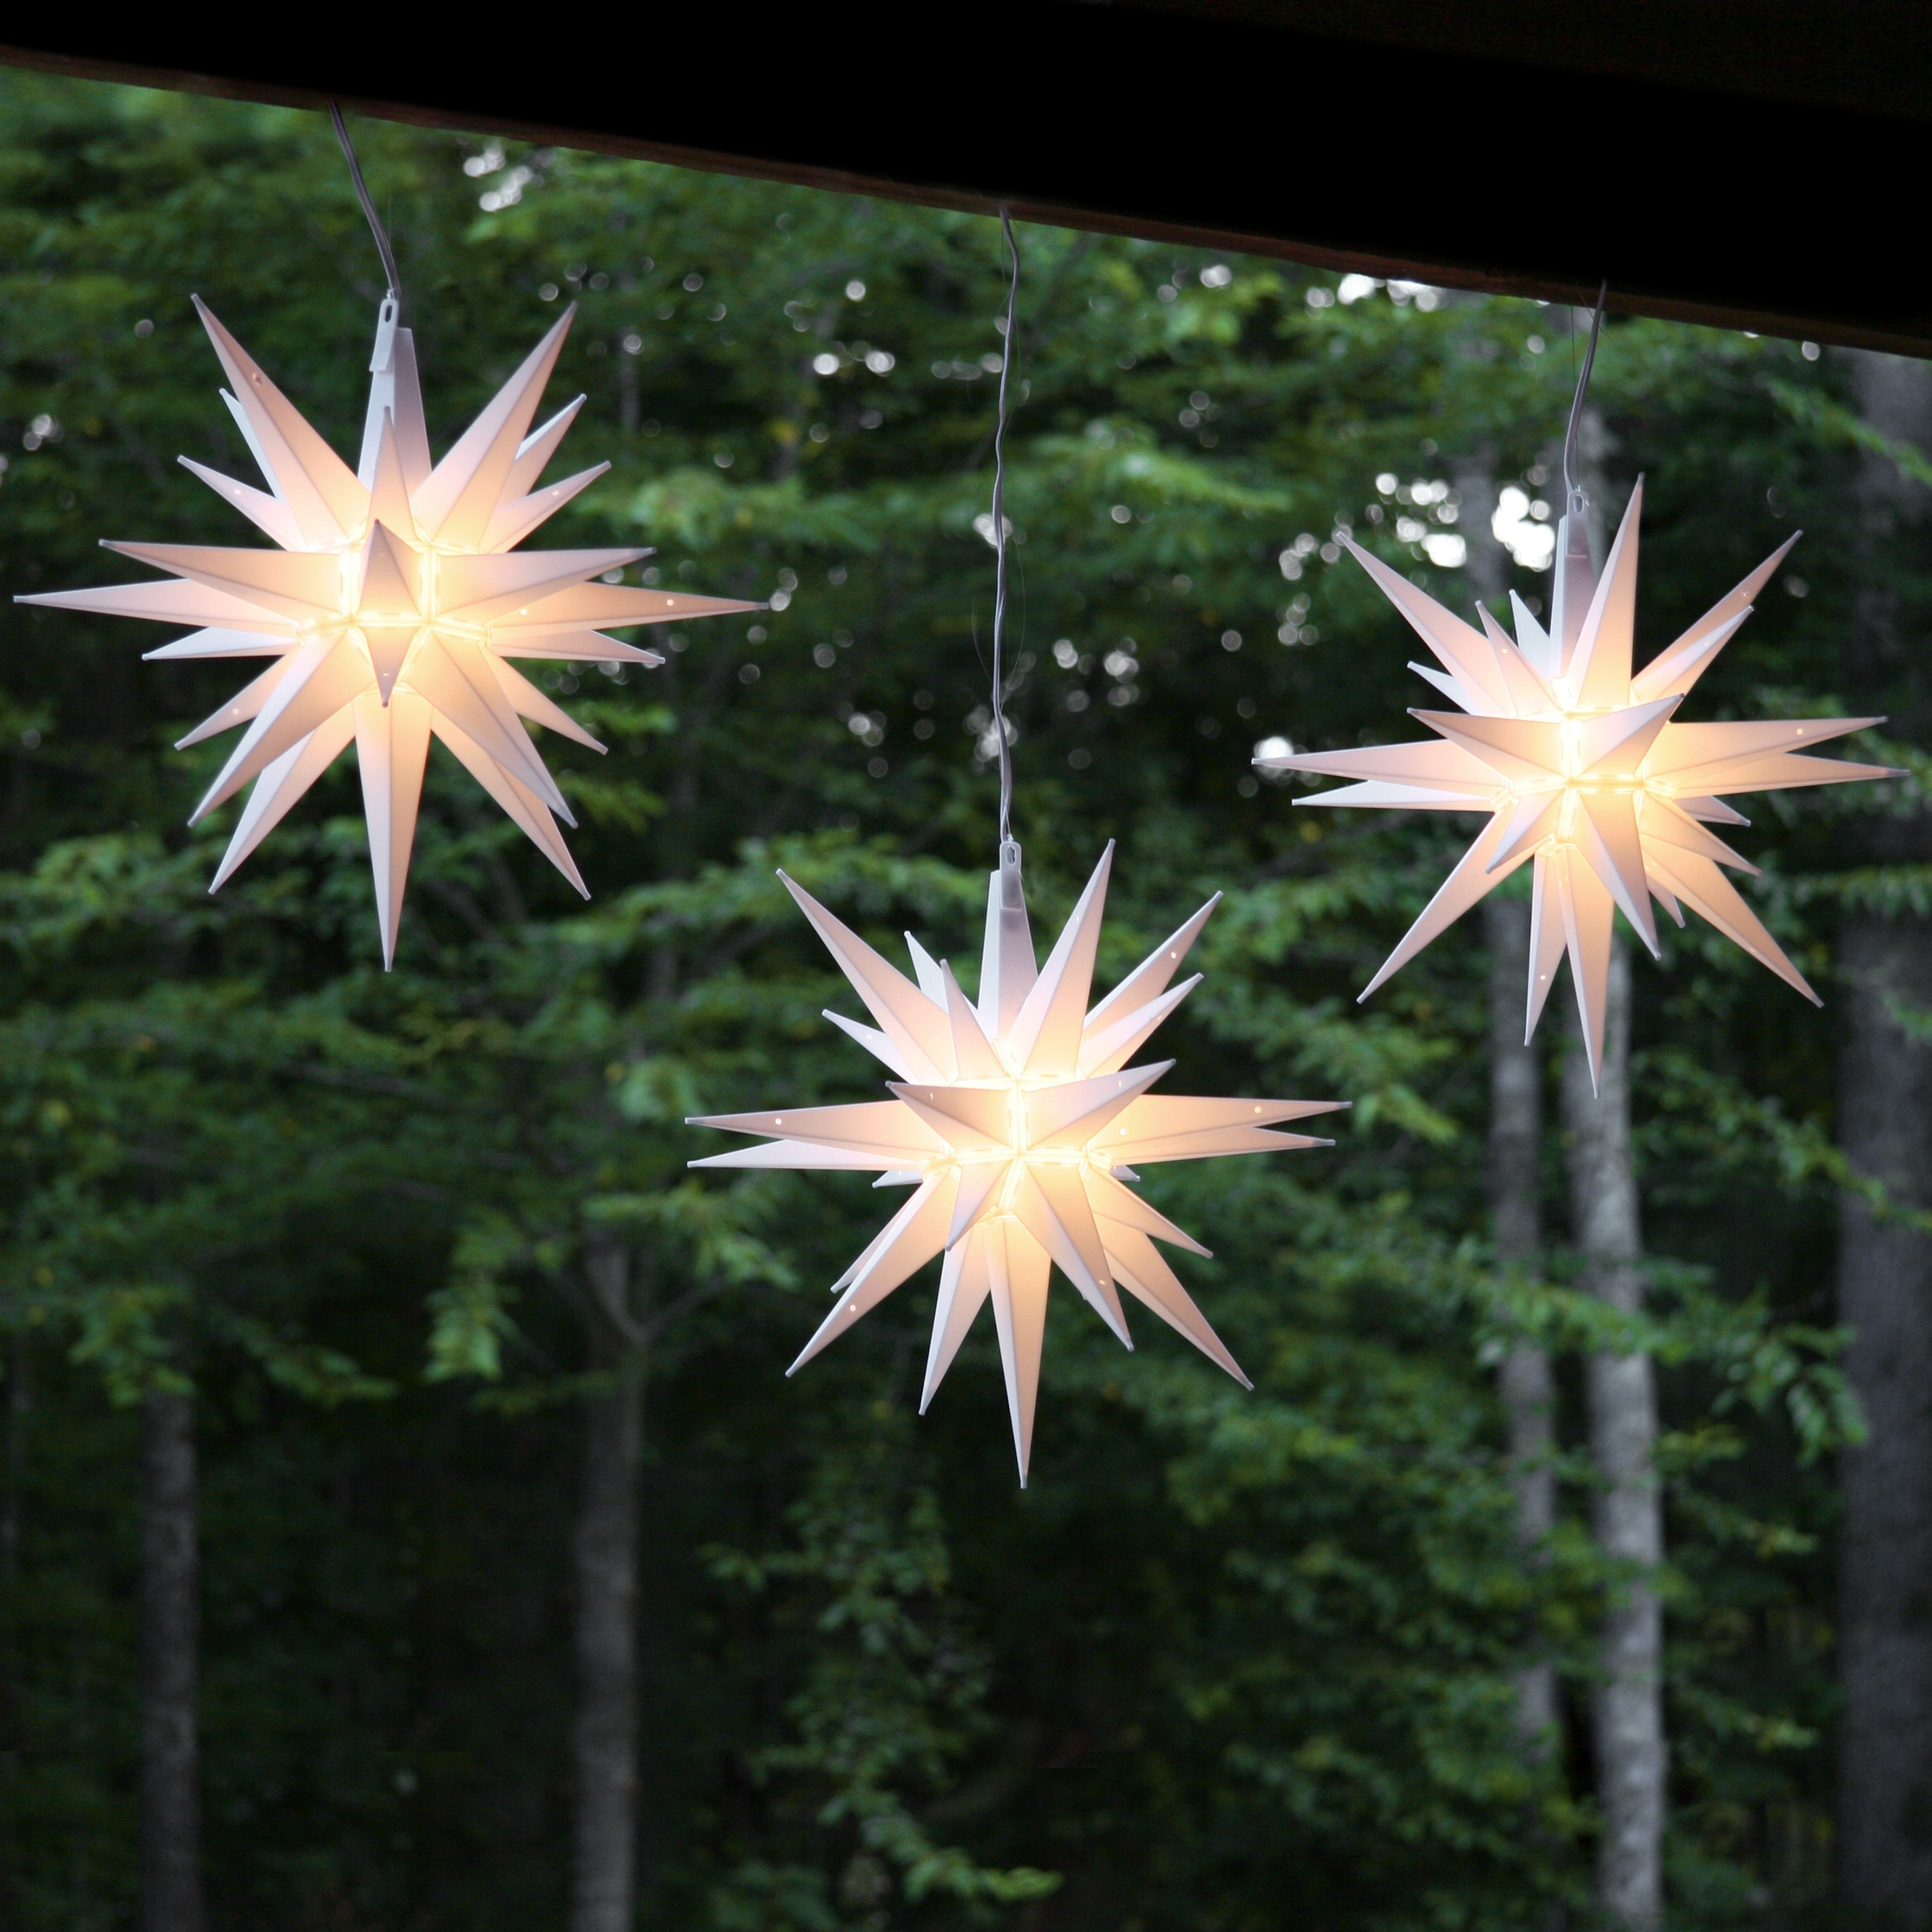 Moravian stars hanging across the porch at Christmas.